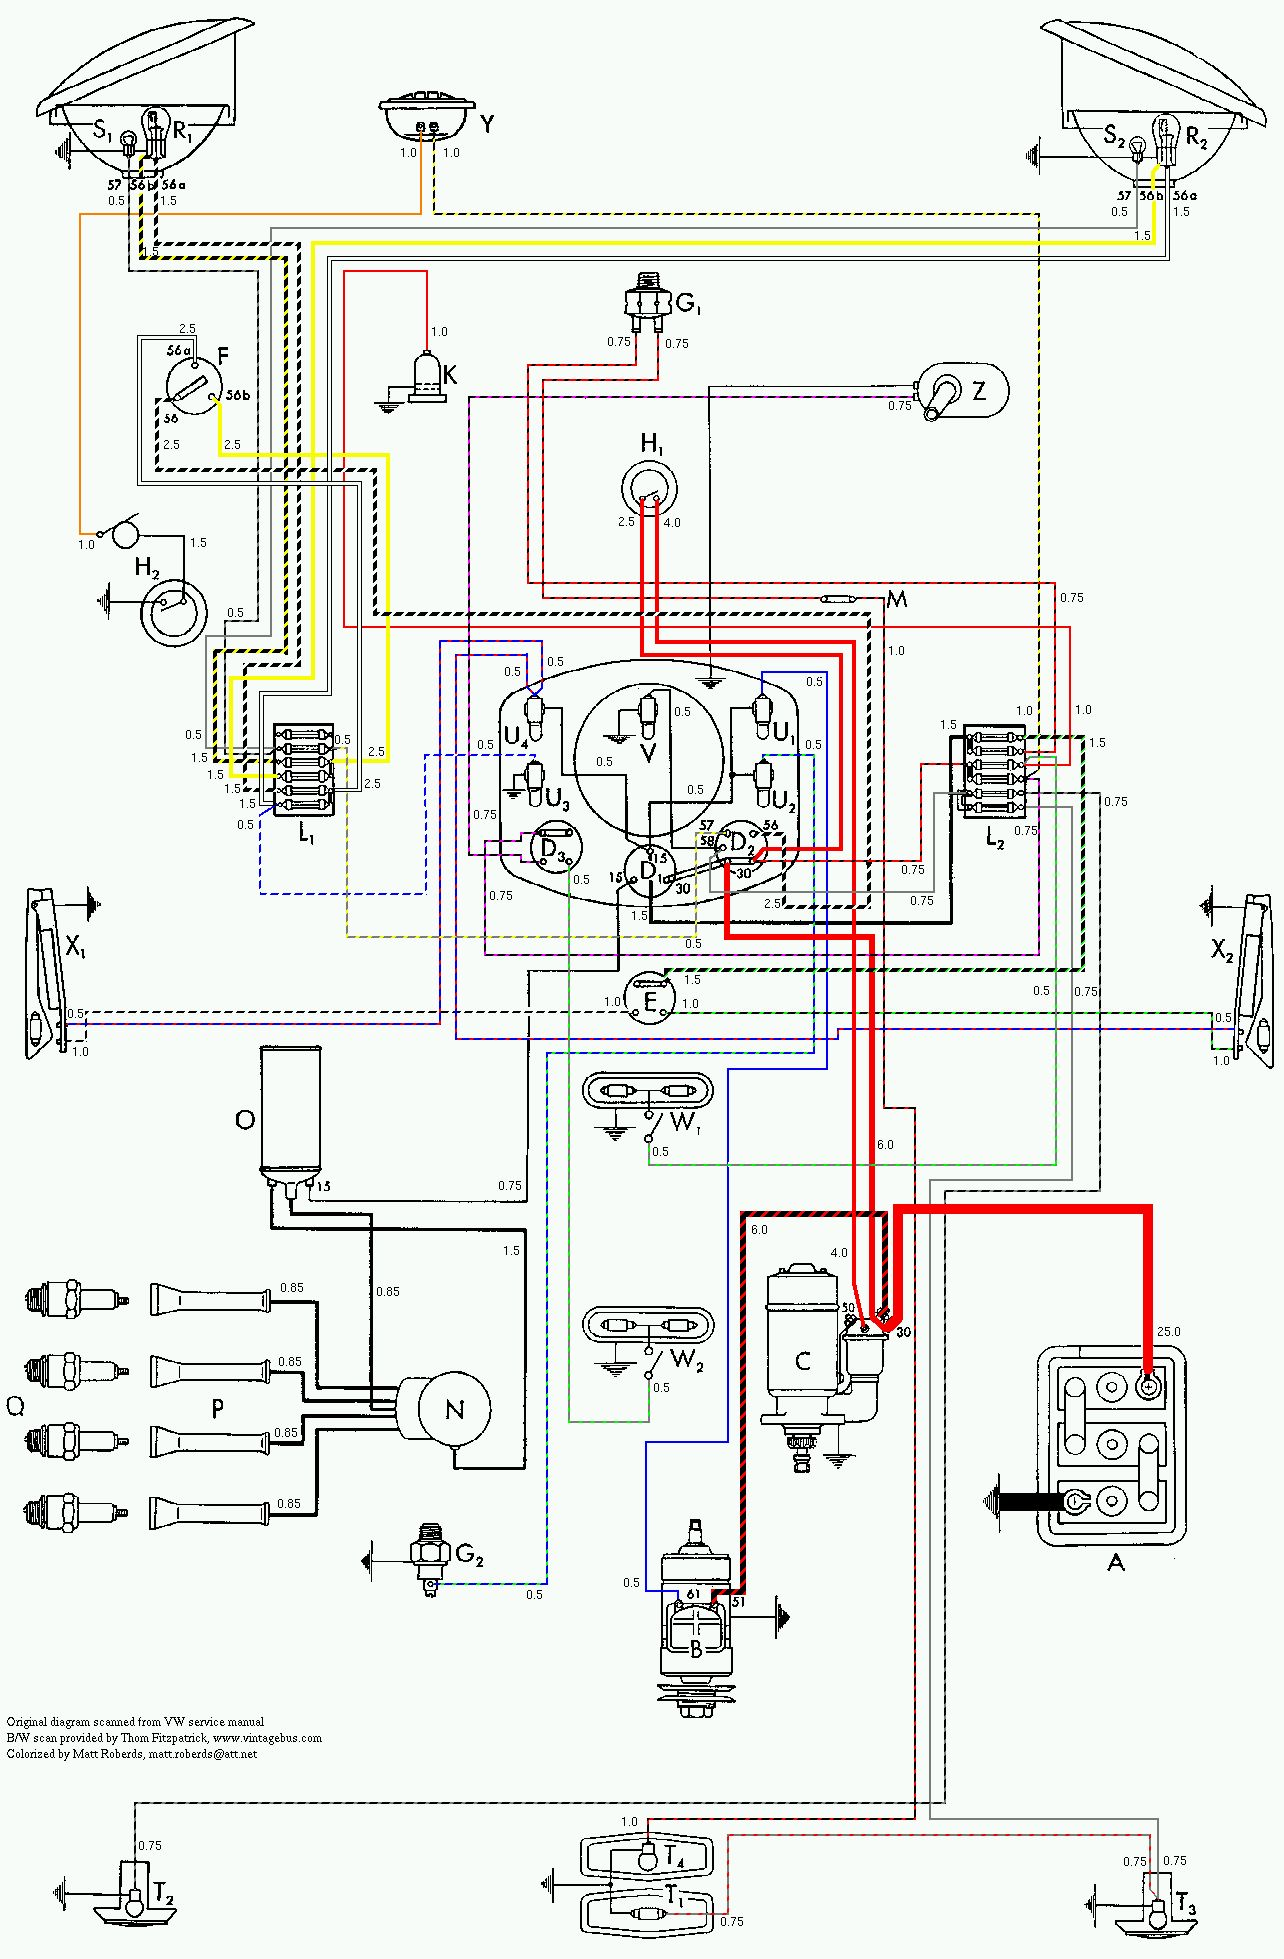 vintagebus com vw bus (and other) wiring diagrams vw wiring diagram light switch wiring diagram vanagon #16